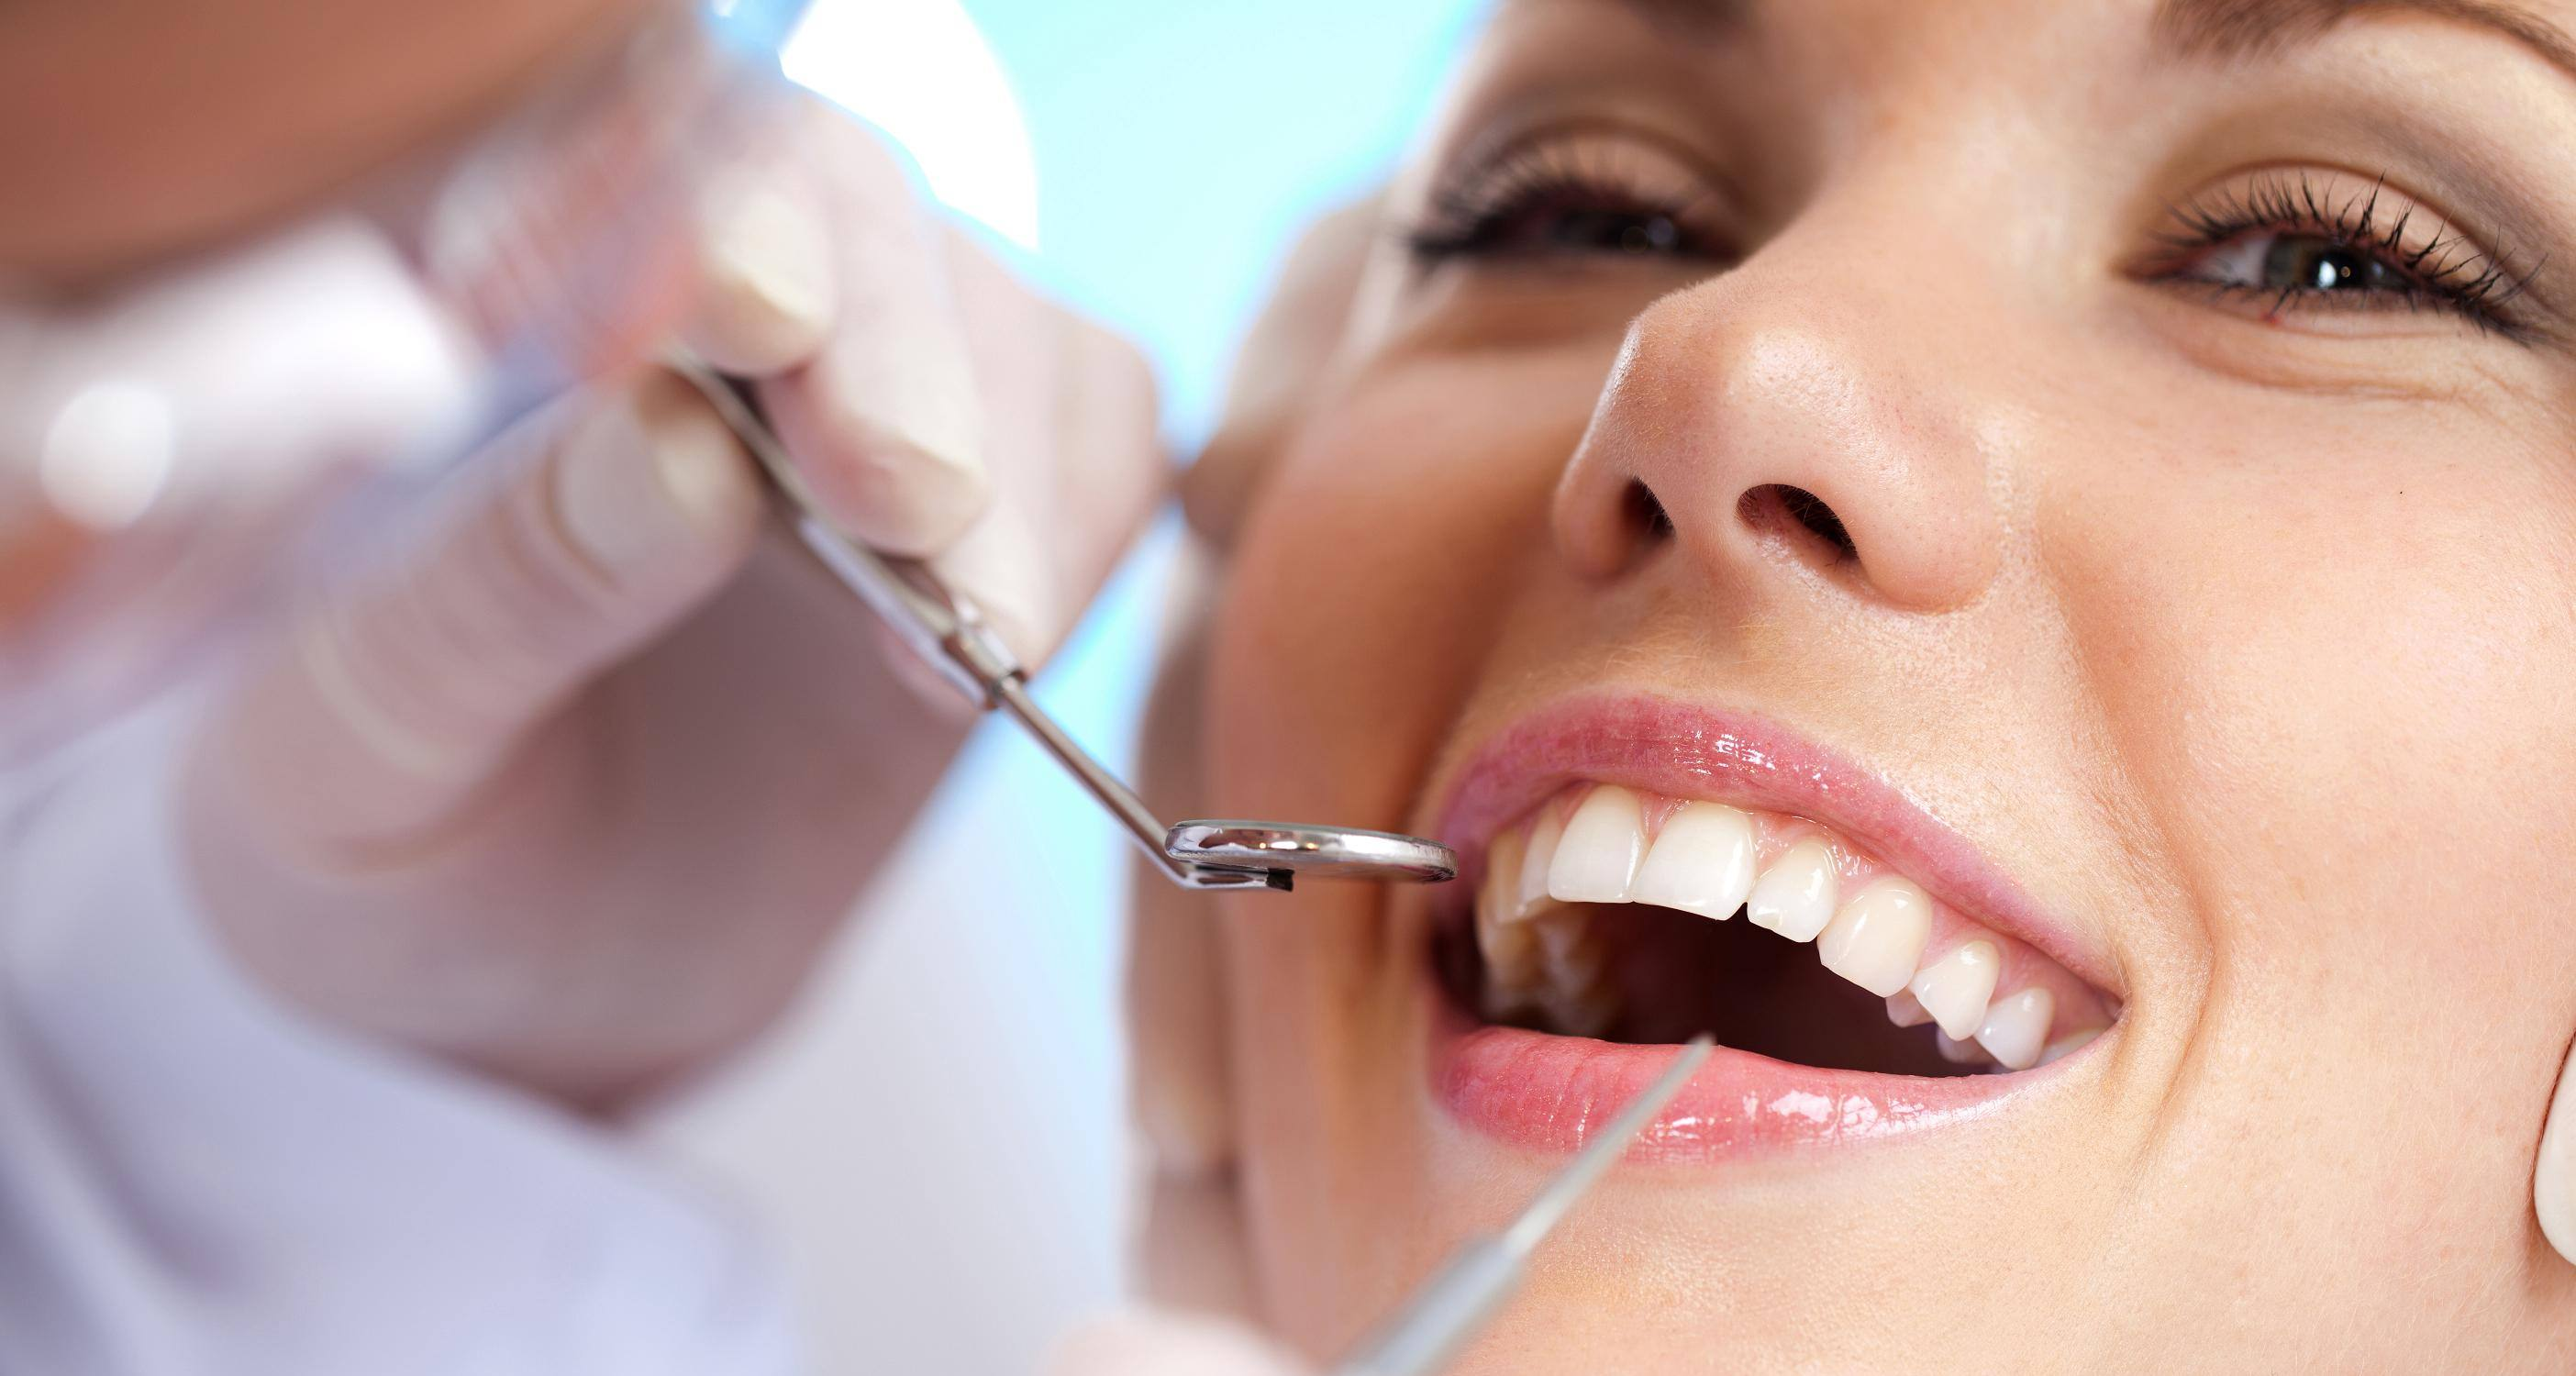 Affordable Dental Coverage - How to Find it in Your Area